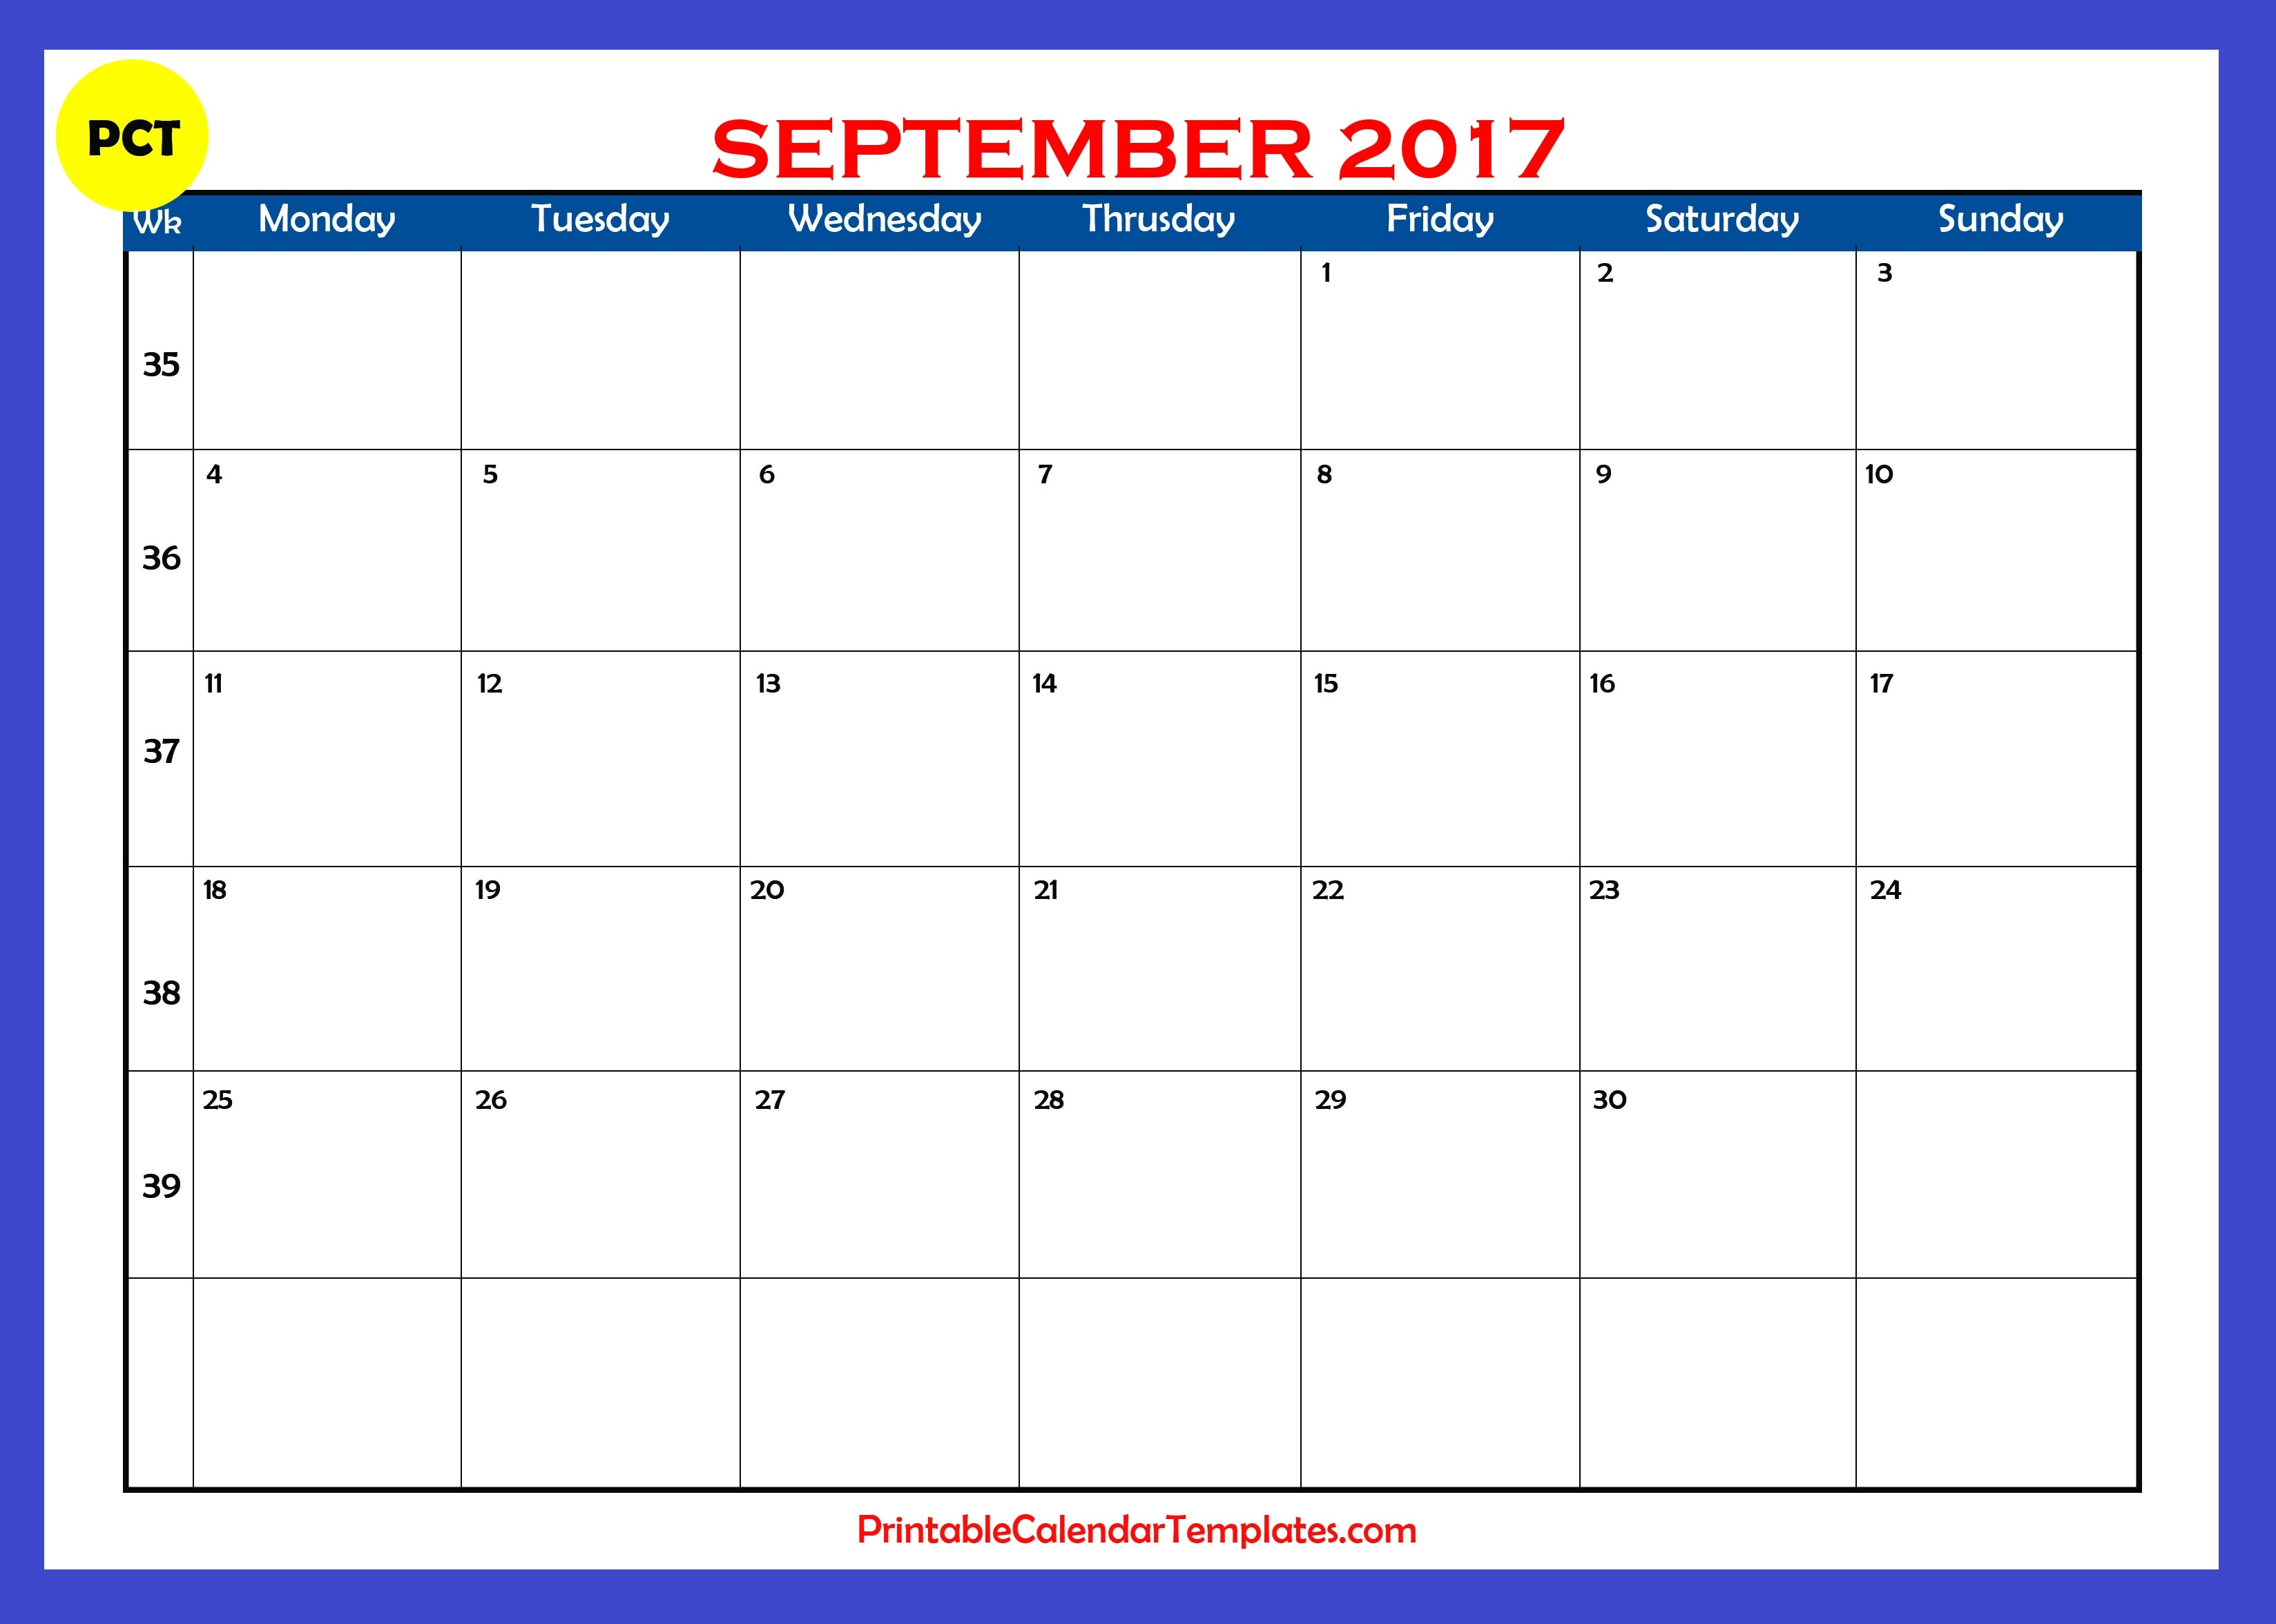 September 2017 Calendar printable | Printable Calendar Templates